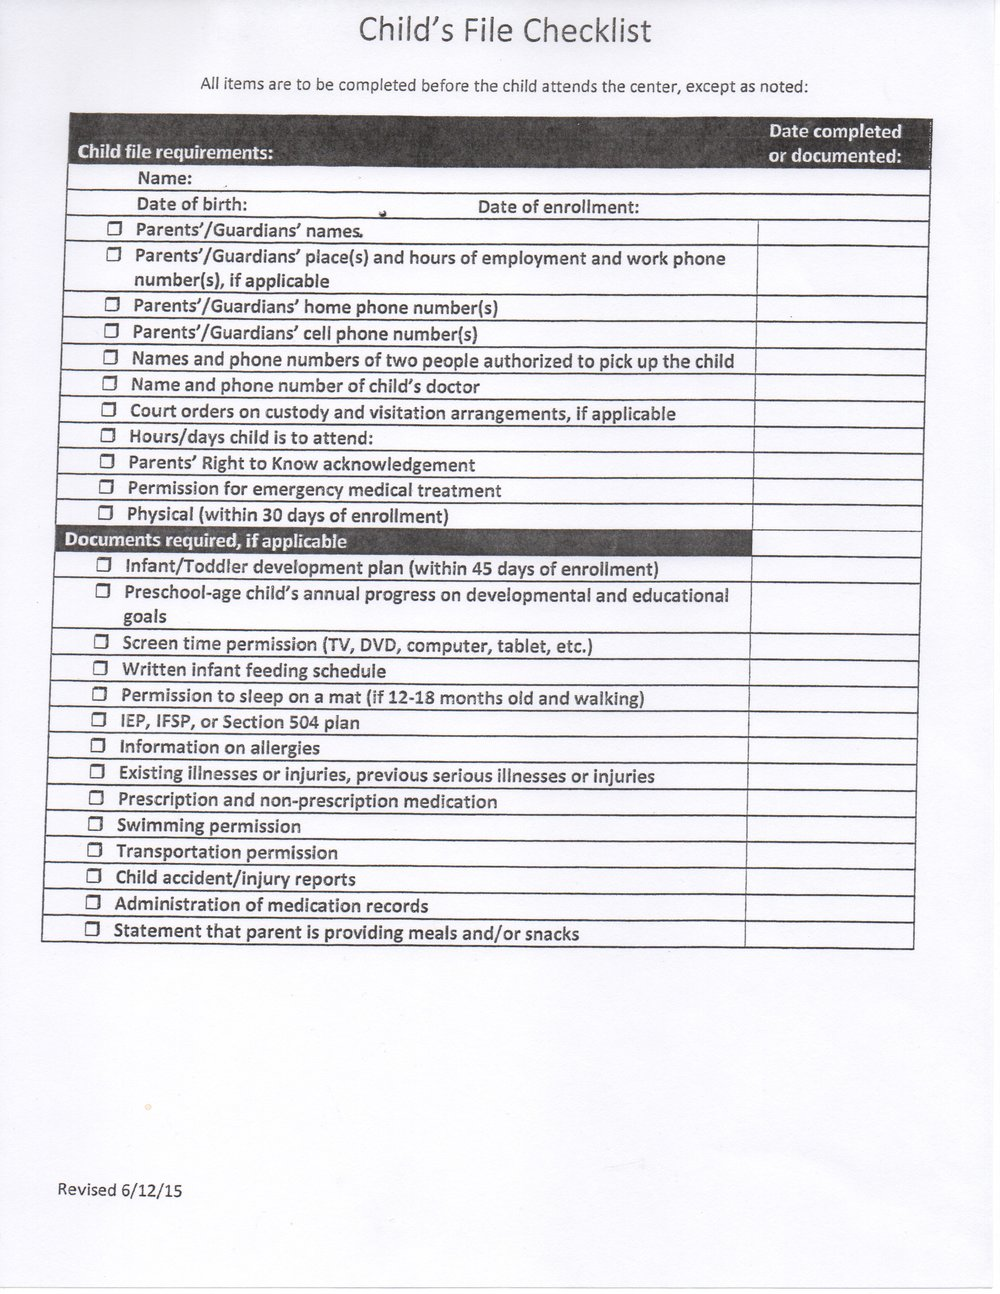 child file checklist kind mind kids